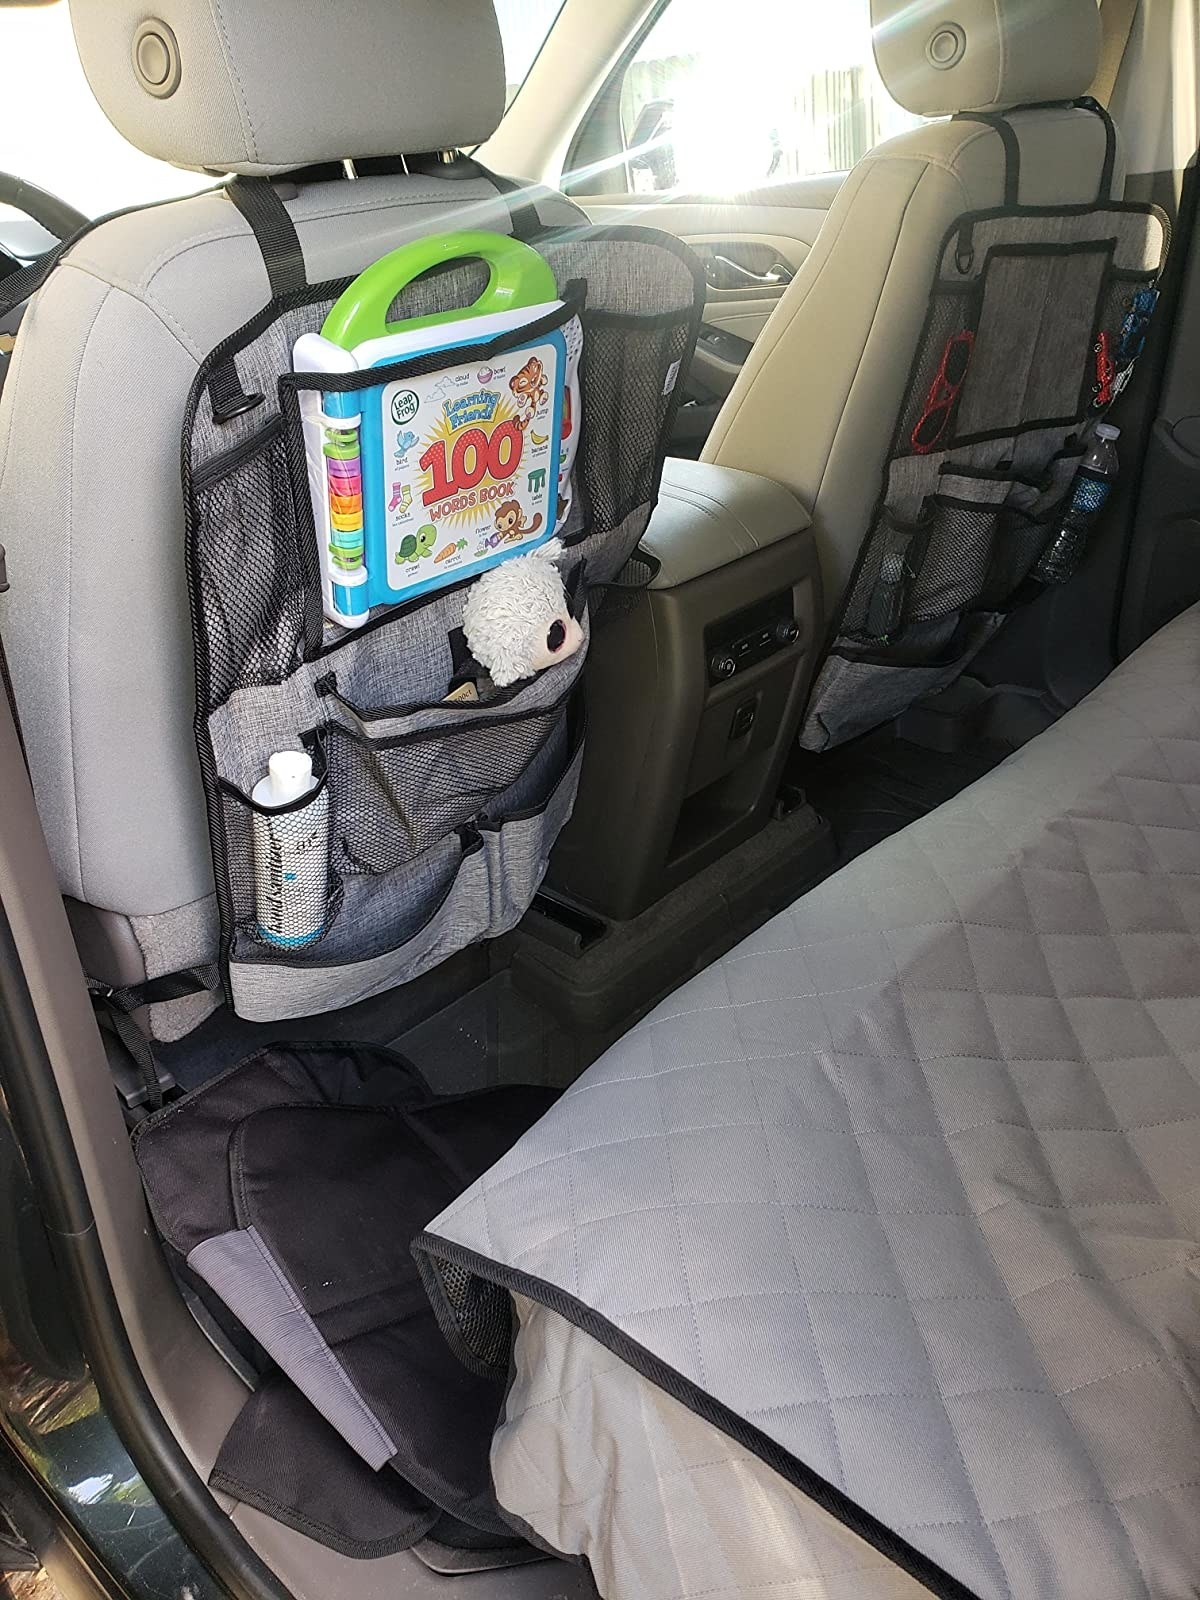 Reviewer photo of the organizers in a car holding baby supplies